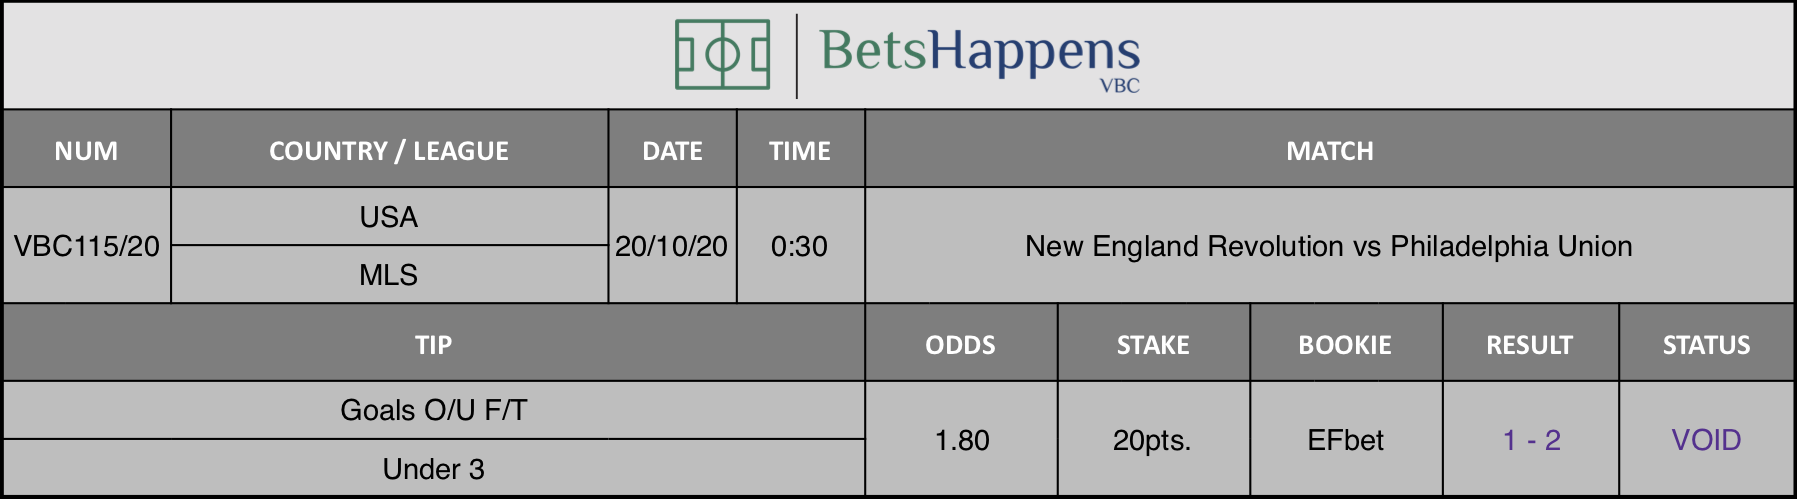 Results of our advice for the New England Revolution vs Philadelphia Union game where Goals O / U F / T Under 3 is recommended.